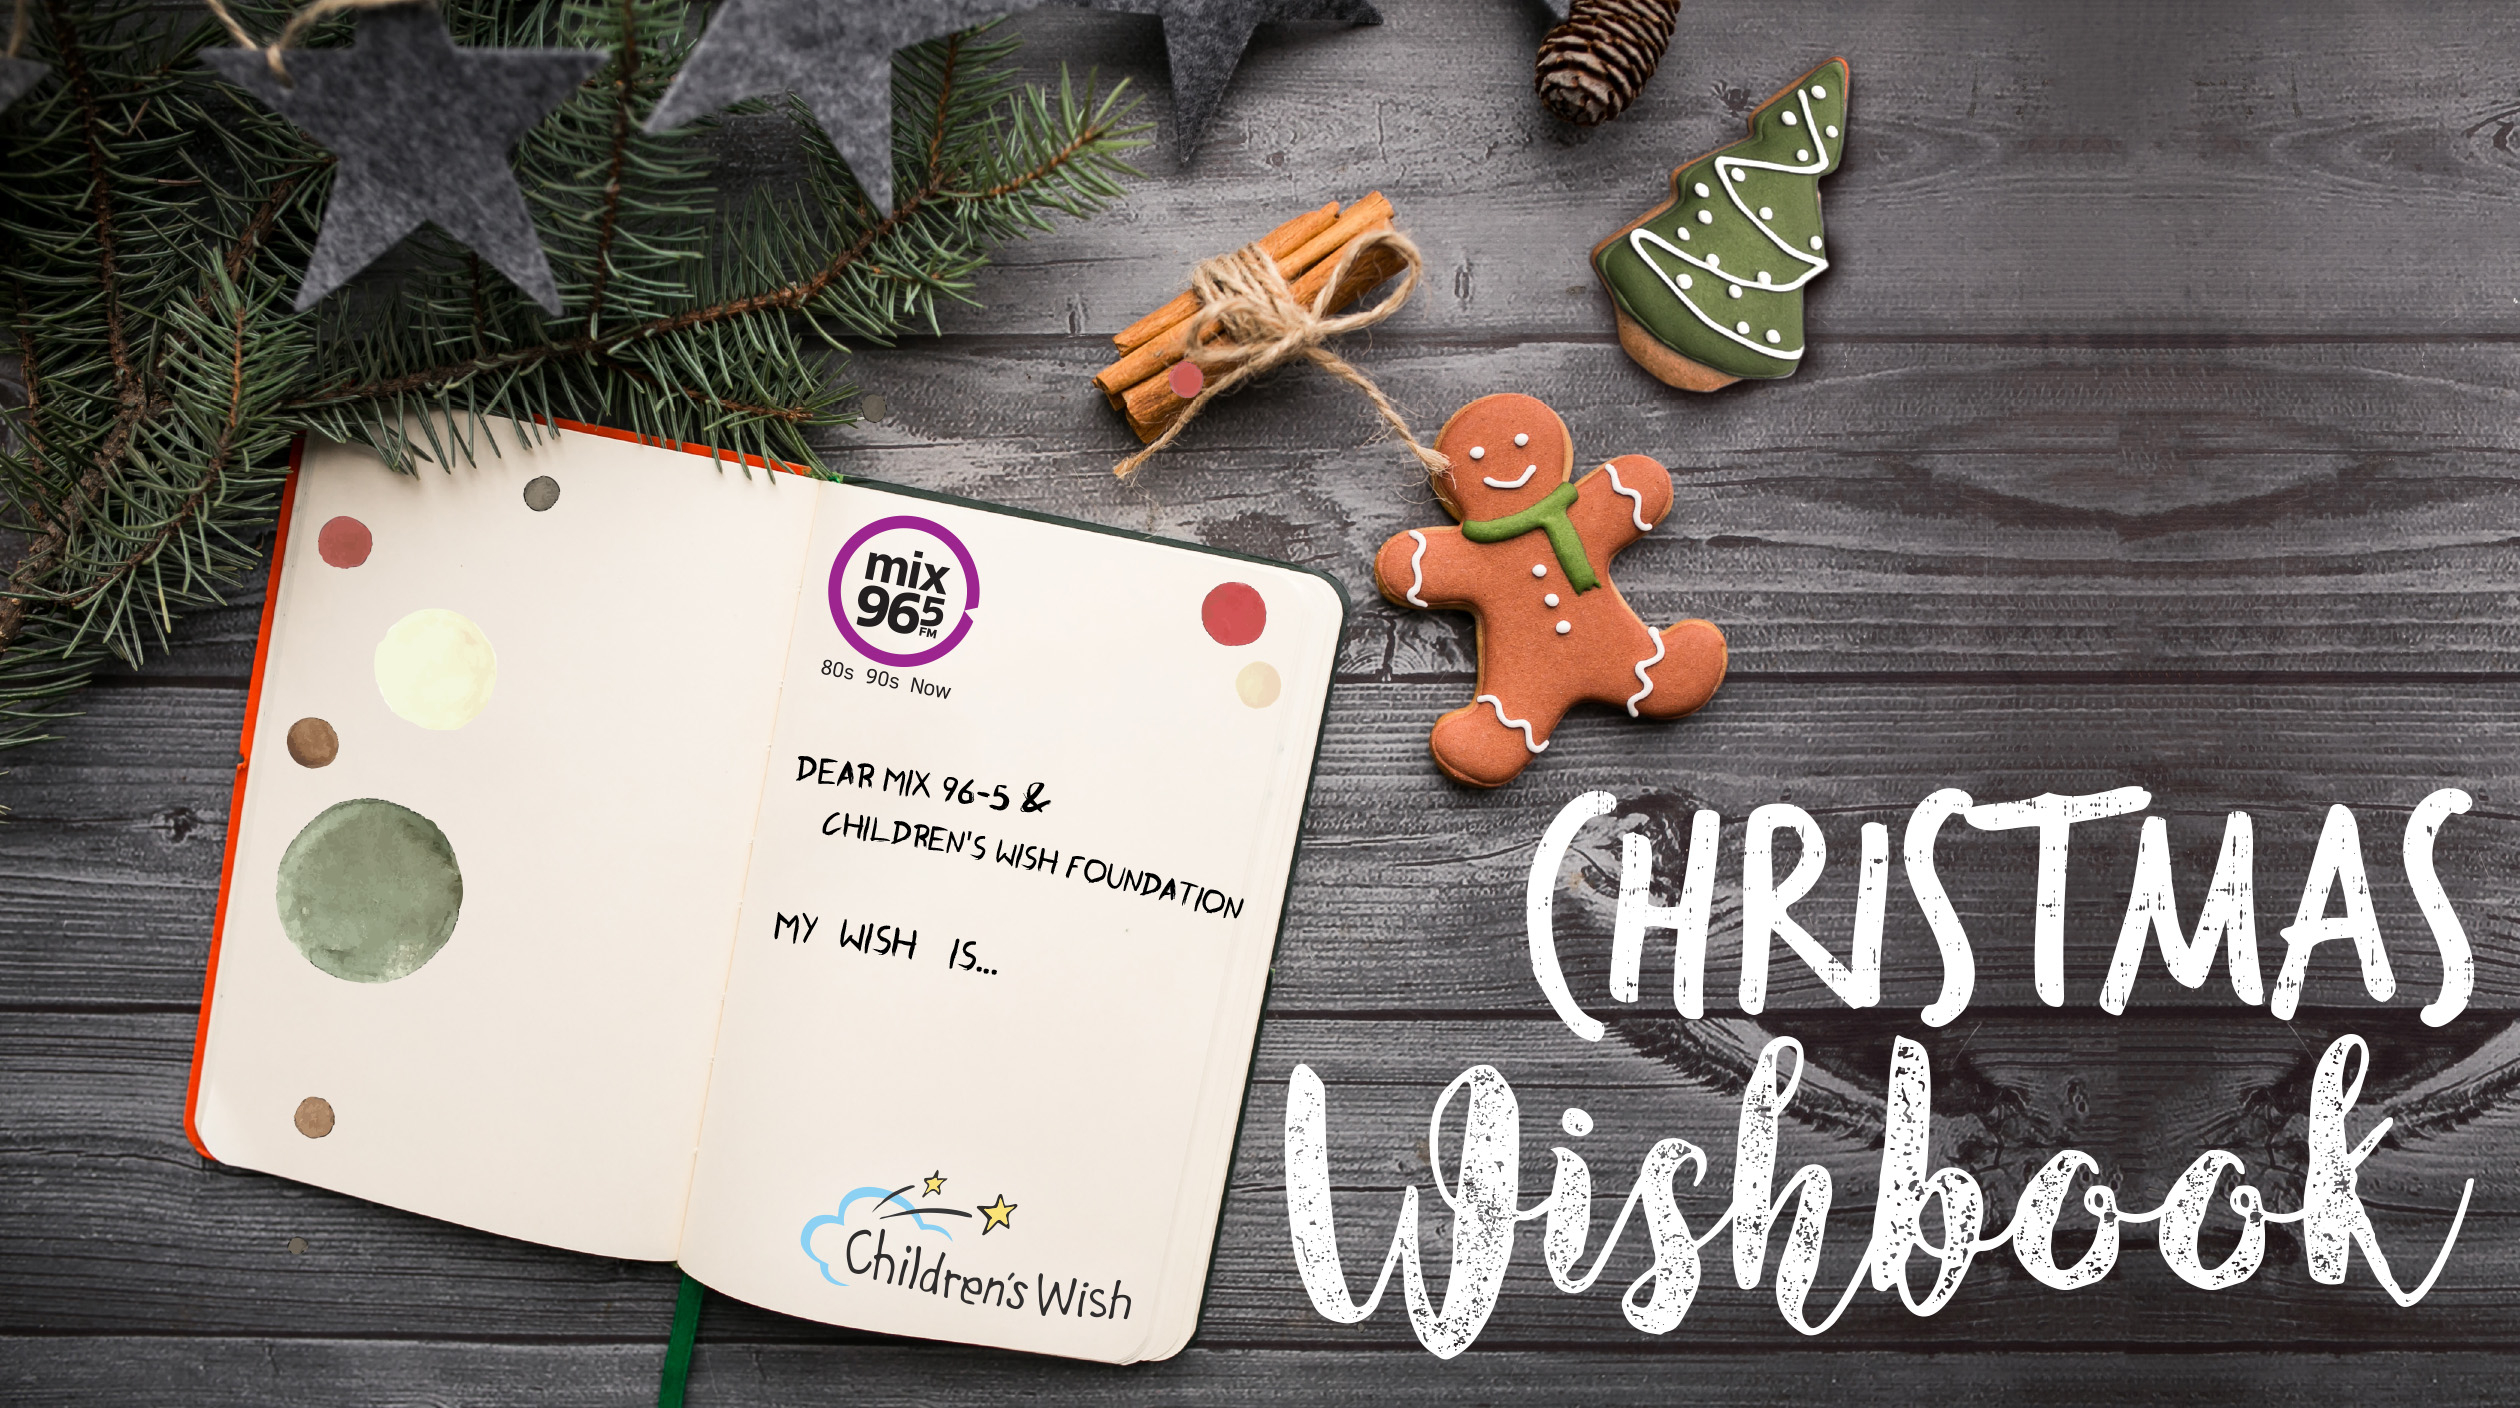 Mix 96-5 Christmas Wishbook (STARTING PAGE)